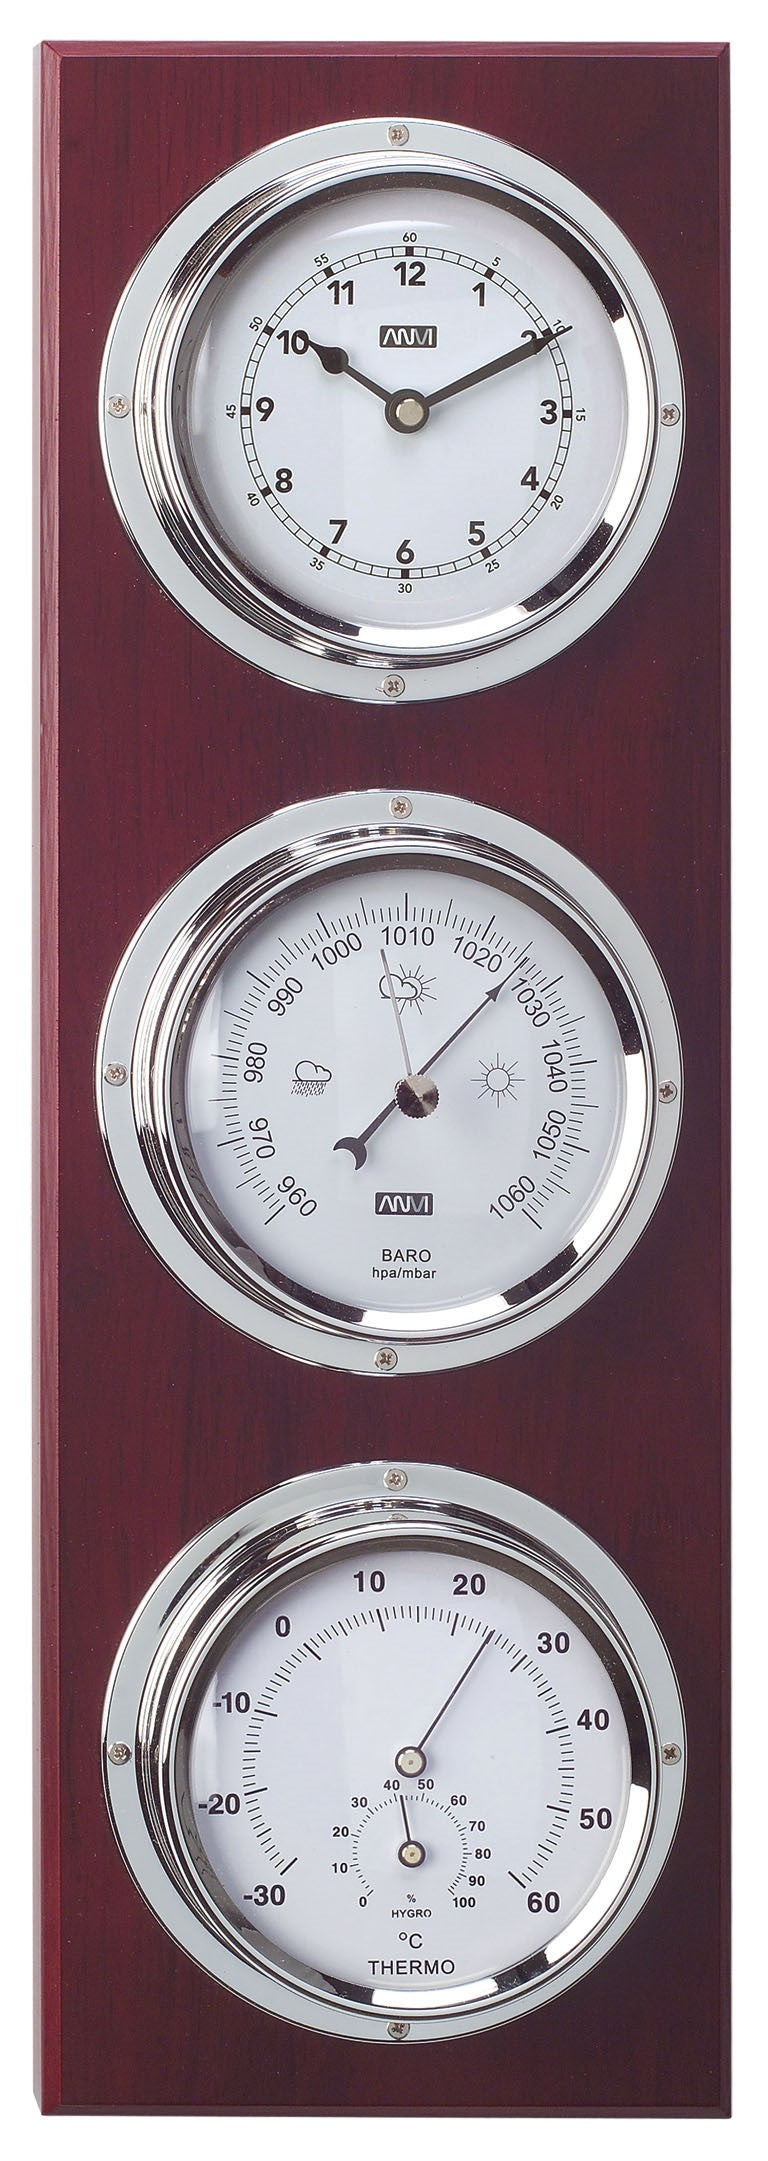 ANVI Barometer, Thermometer, Hygrometer, Clock - Chrome, and Wood - Rectangular (Coastal only)